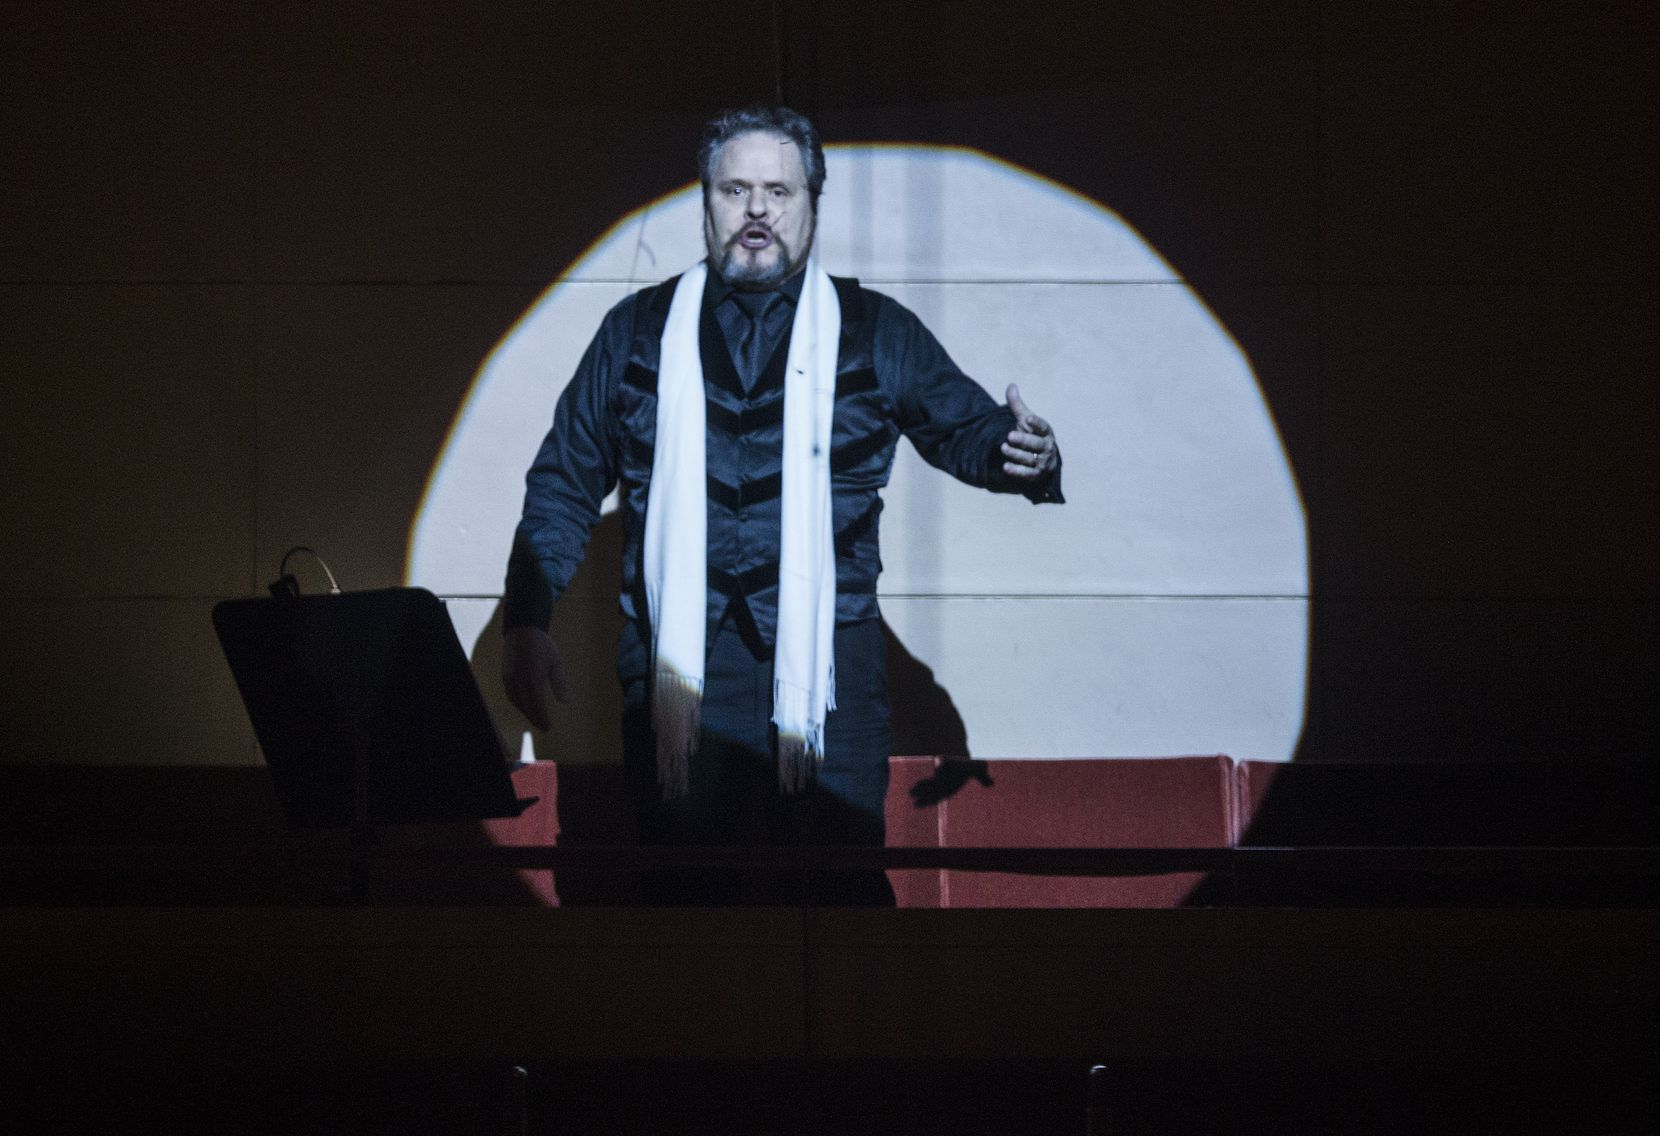 "Mark Delavan performs as Jochanaan, (John the Baptist), in The Dallas Symphony Orchestra's performance of Strauss' ""Salome,"" conducted by Fabio Luisi on Friday, January 31, 2020 at the Meyerson Symphony Center in Dallas."